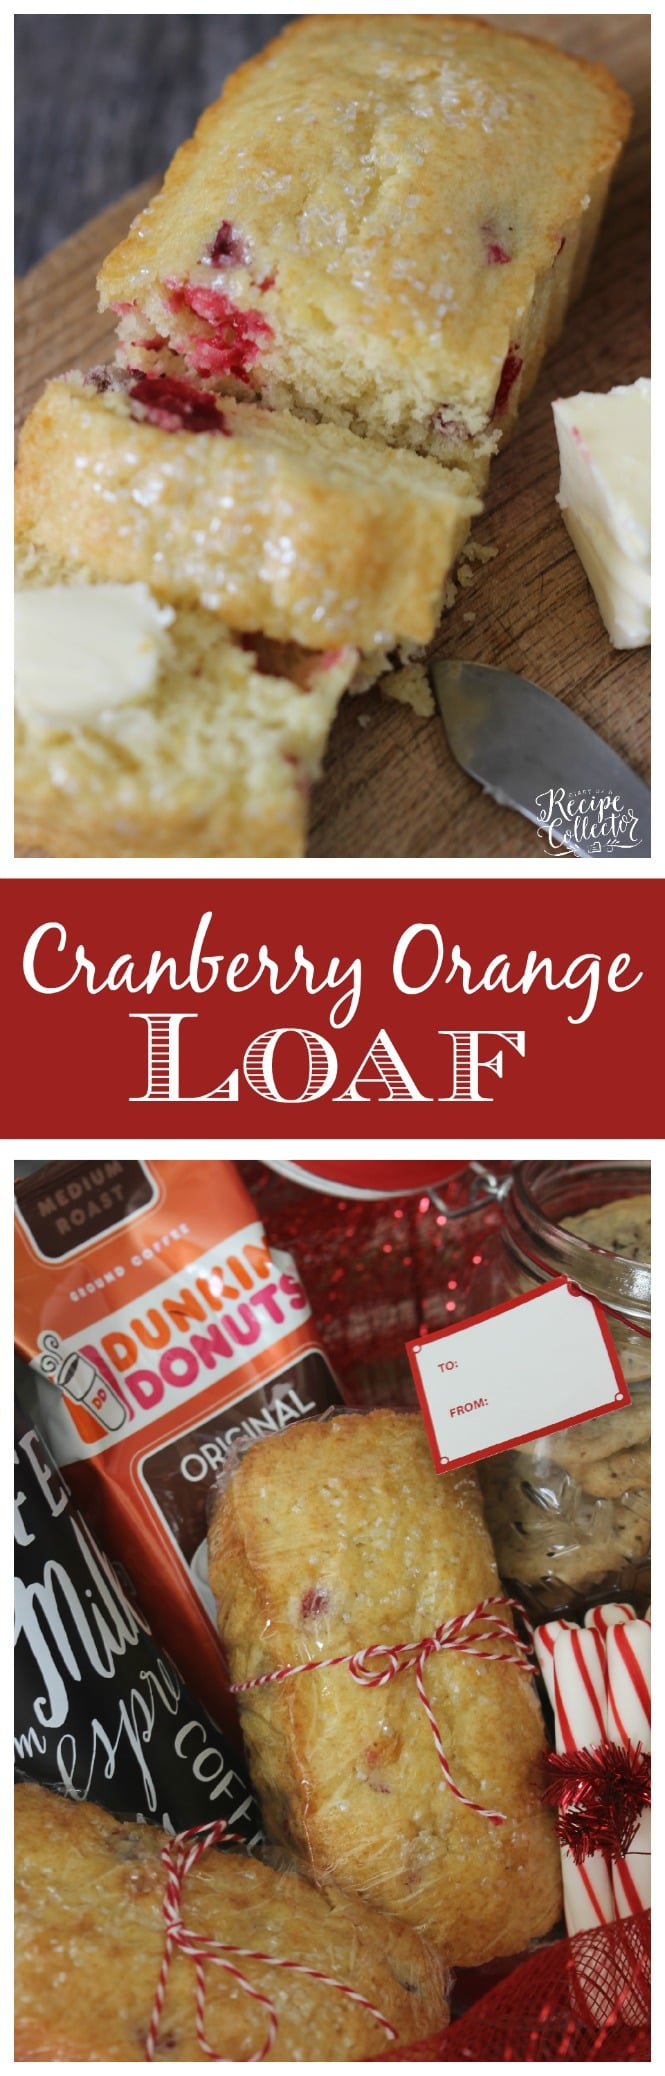 Cranberry Orange Loaf - A wonderfully easy and delicious recipe filled with cranberries and orange juice.  Plus a great gift basket idea featuring Dunkin' Donuts® Coffee!